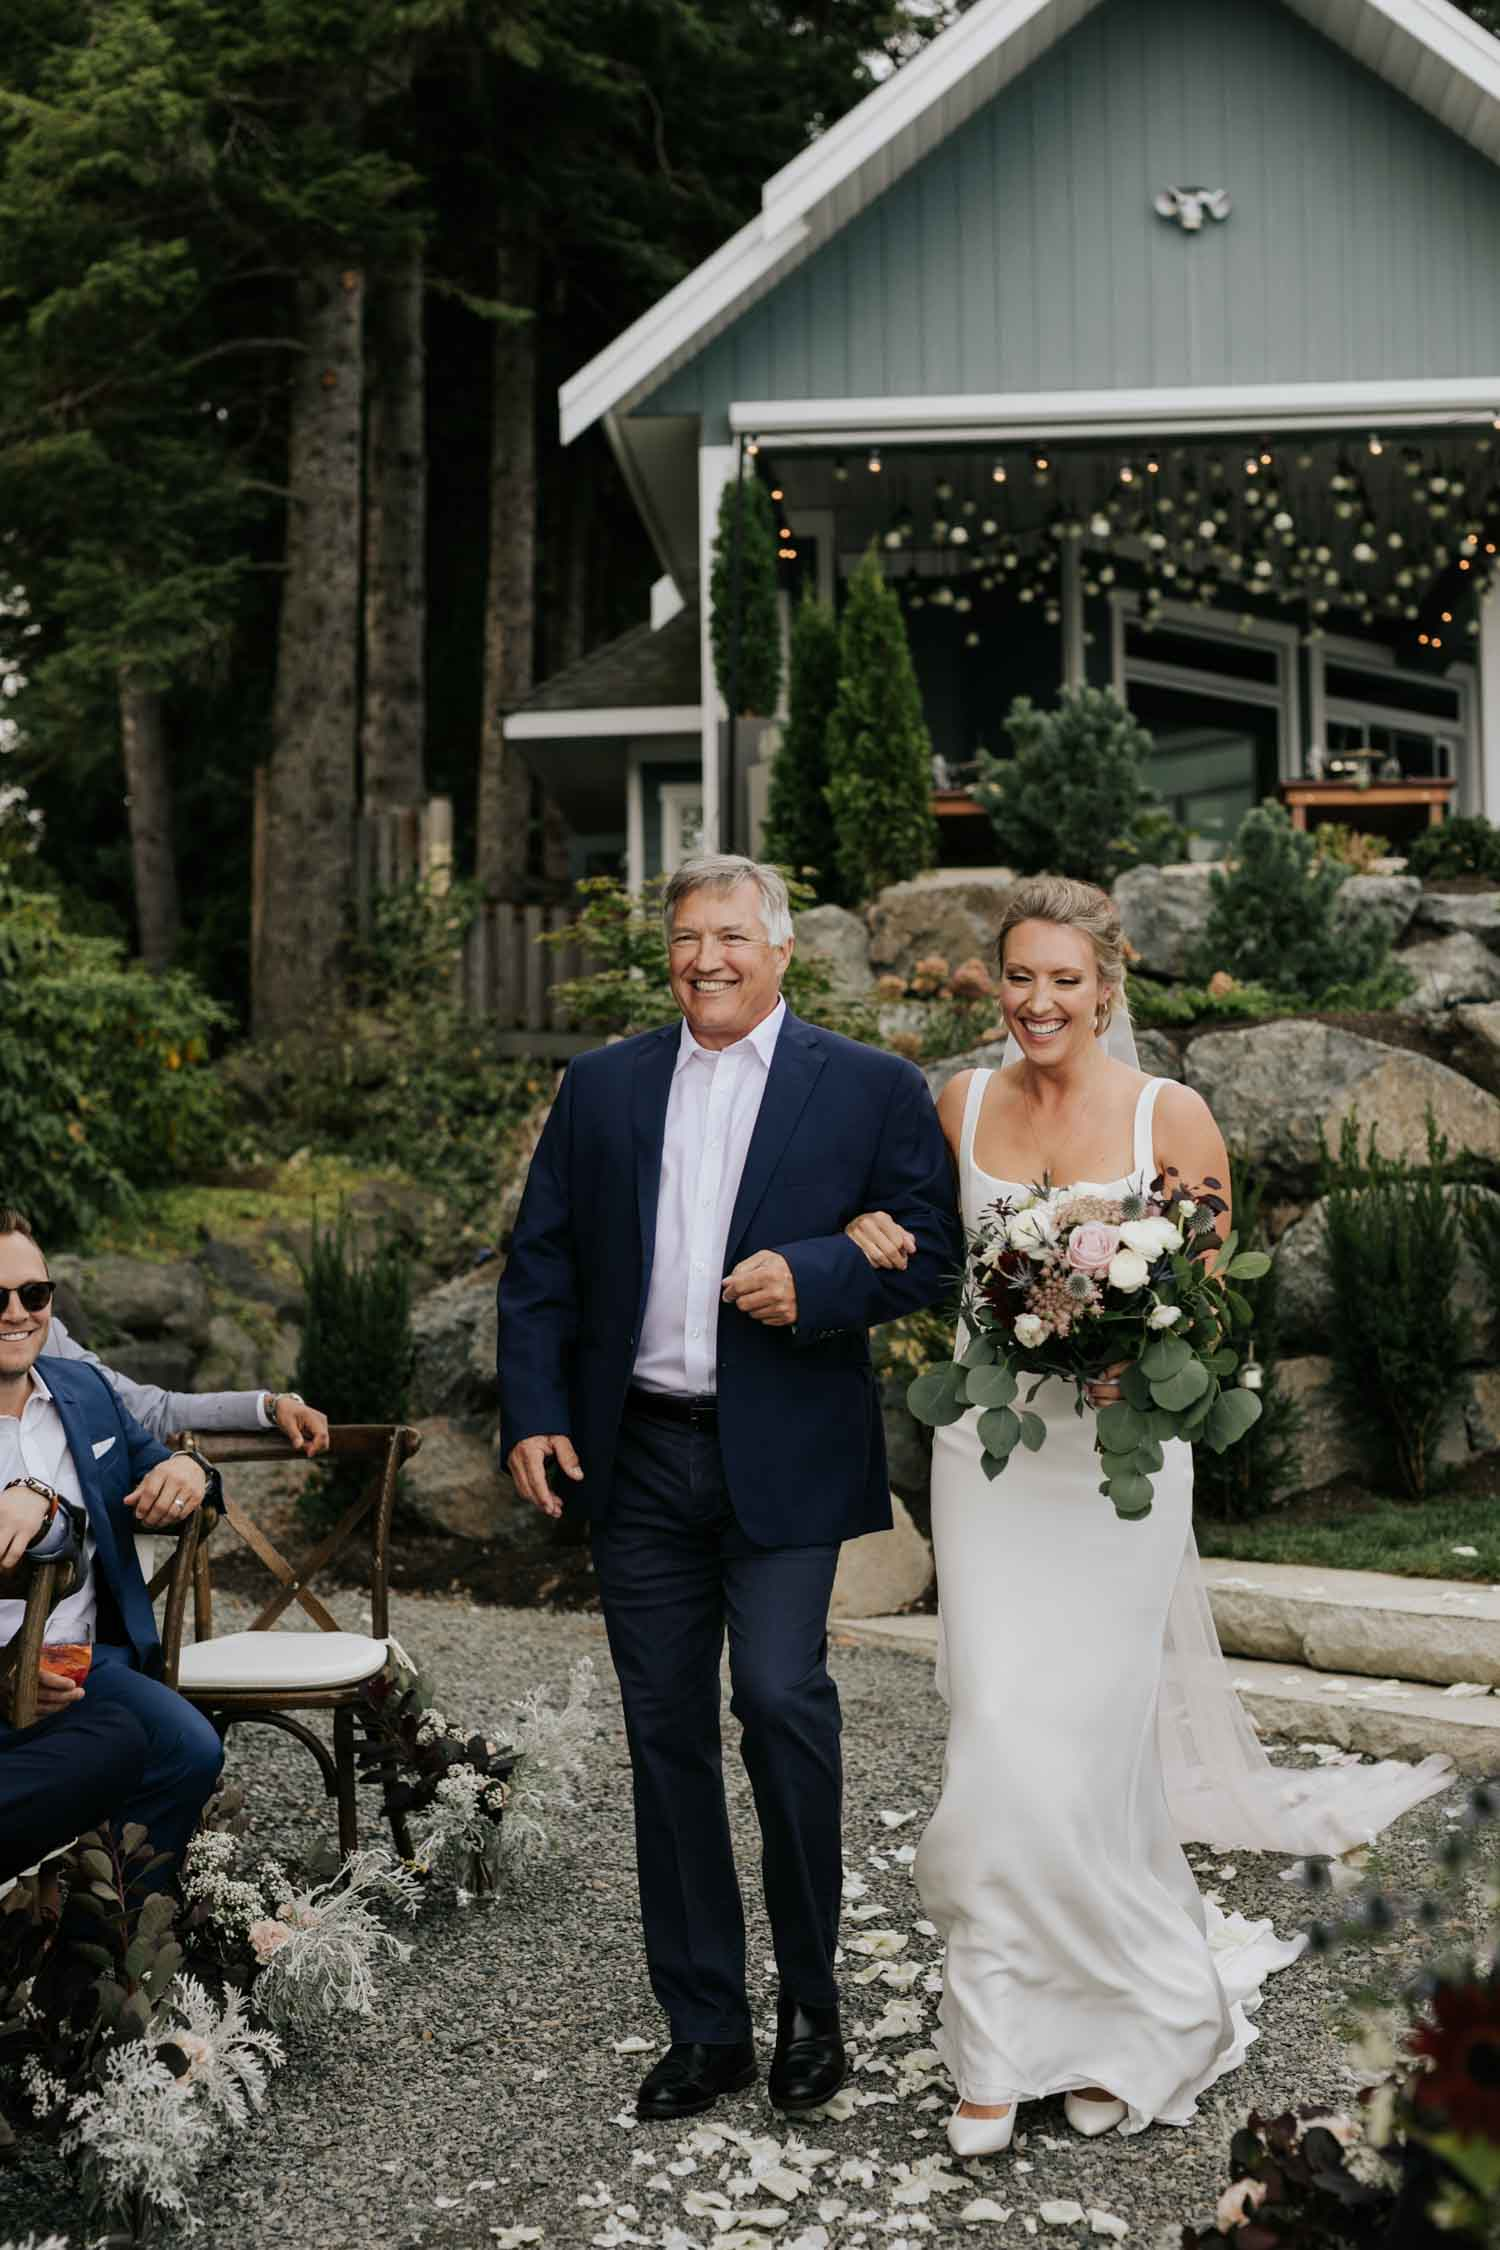 Emotional photo of bride walking down the aisle with her dad at intimate Vancouver Island beach wedding